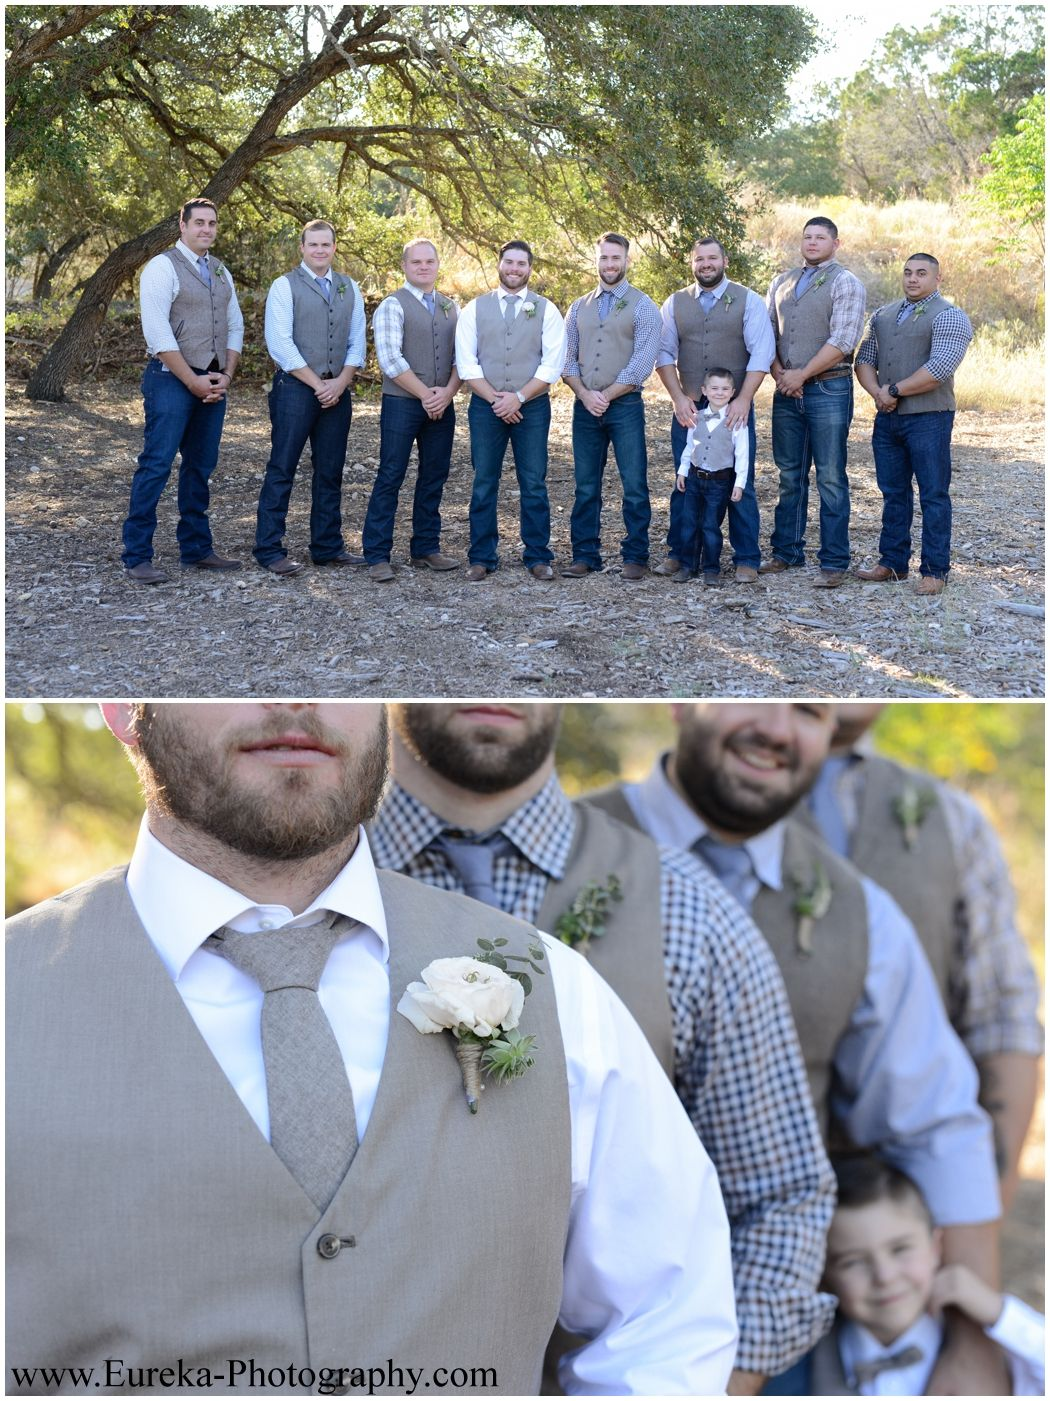 95d0e7727c5c Texas Wedding Style: Groomsmen in jeans, vests, and boots with burlap  boutonnieres at Twisted Ranch Wedding near Austin